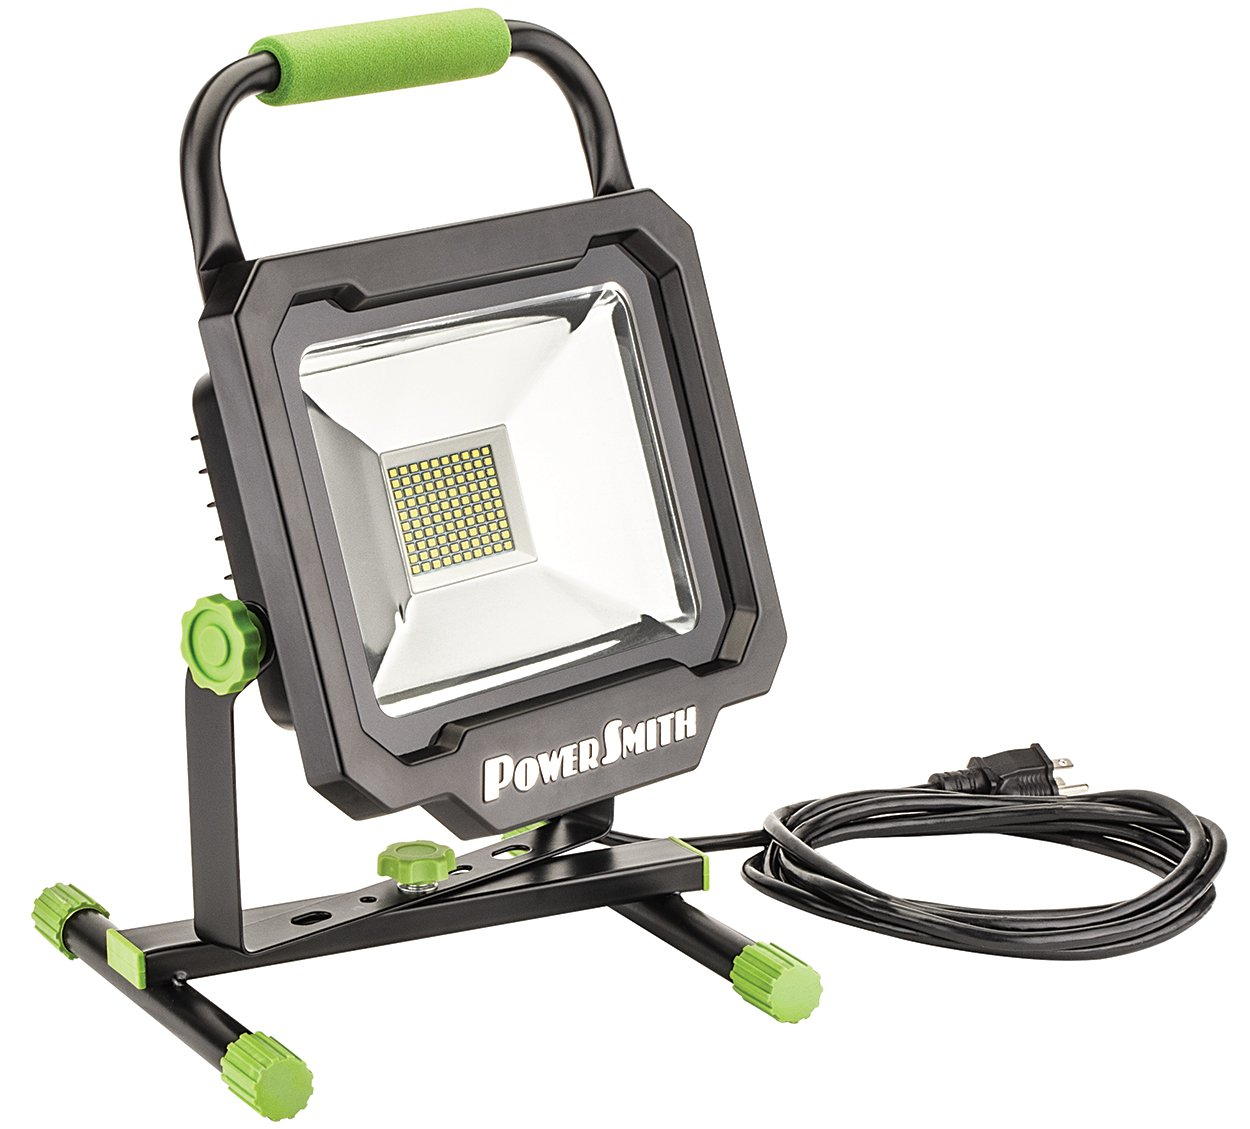 PowerSmith PWL1150BS 50W 5000 Lumen LED Work Light with Black Metal Housing and Stand with 10Ft Power Cord